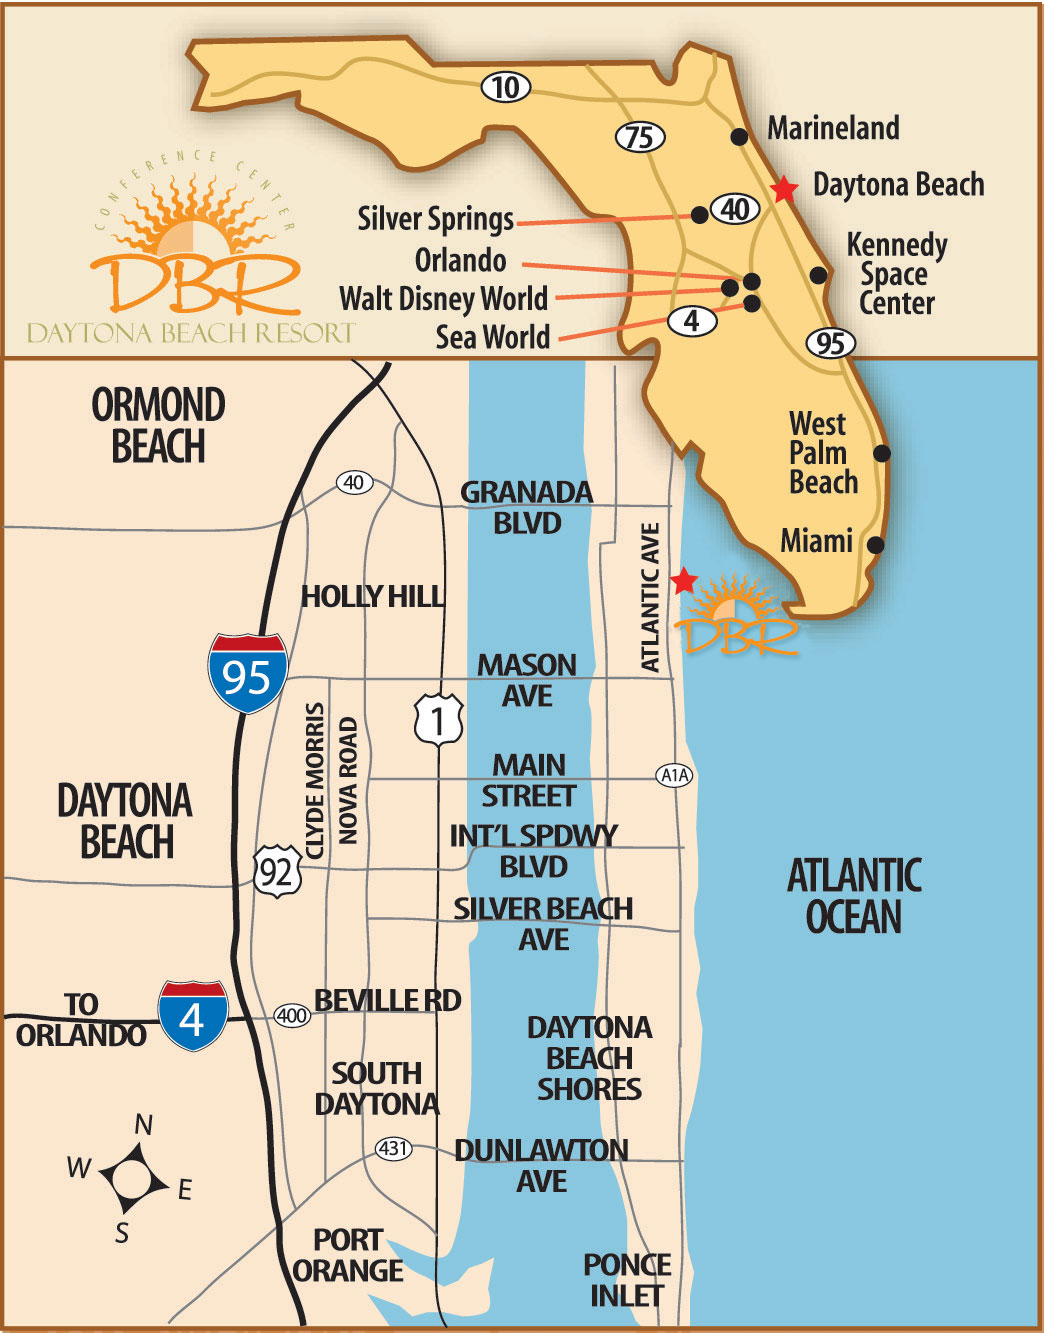 Daytona Beach Florida Maps